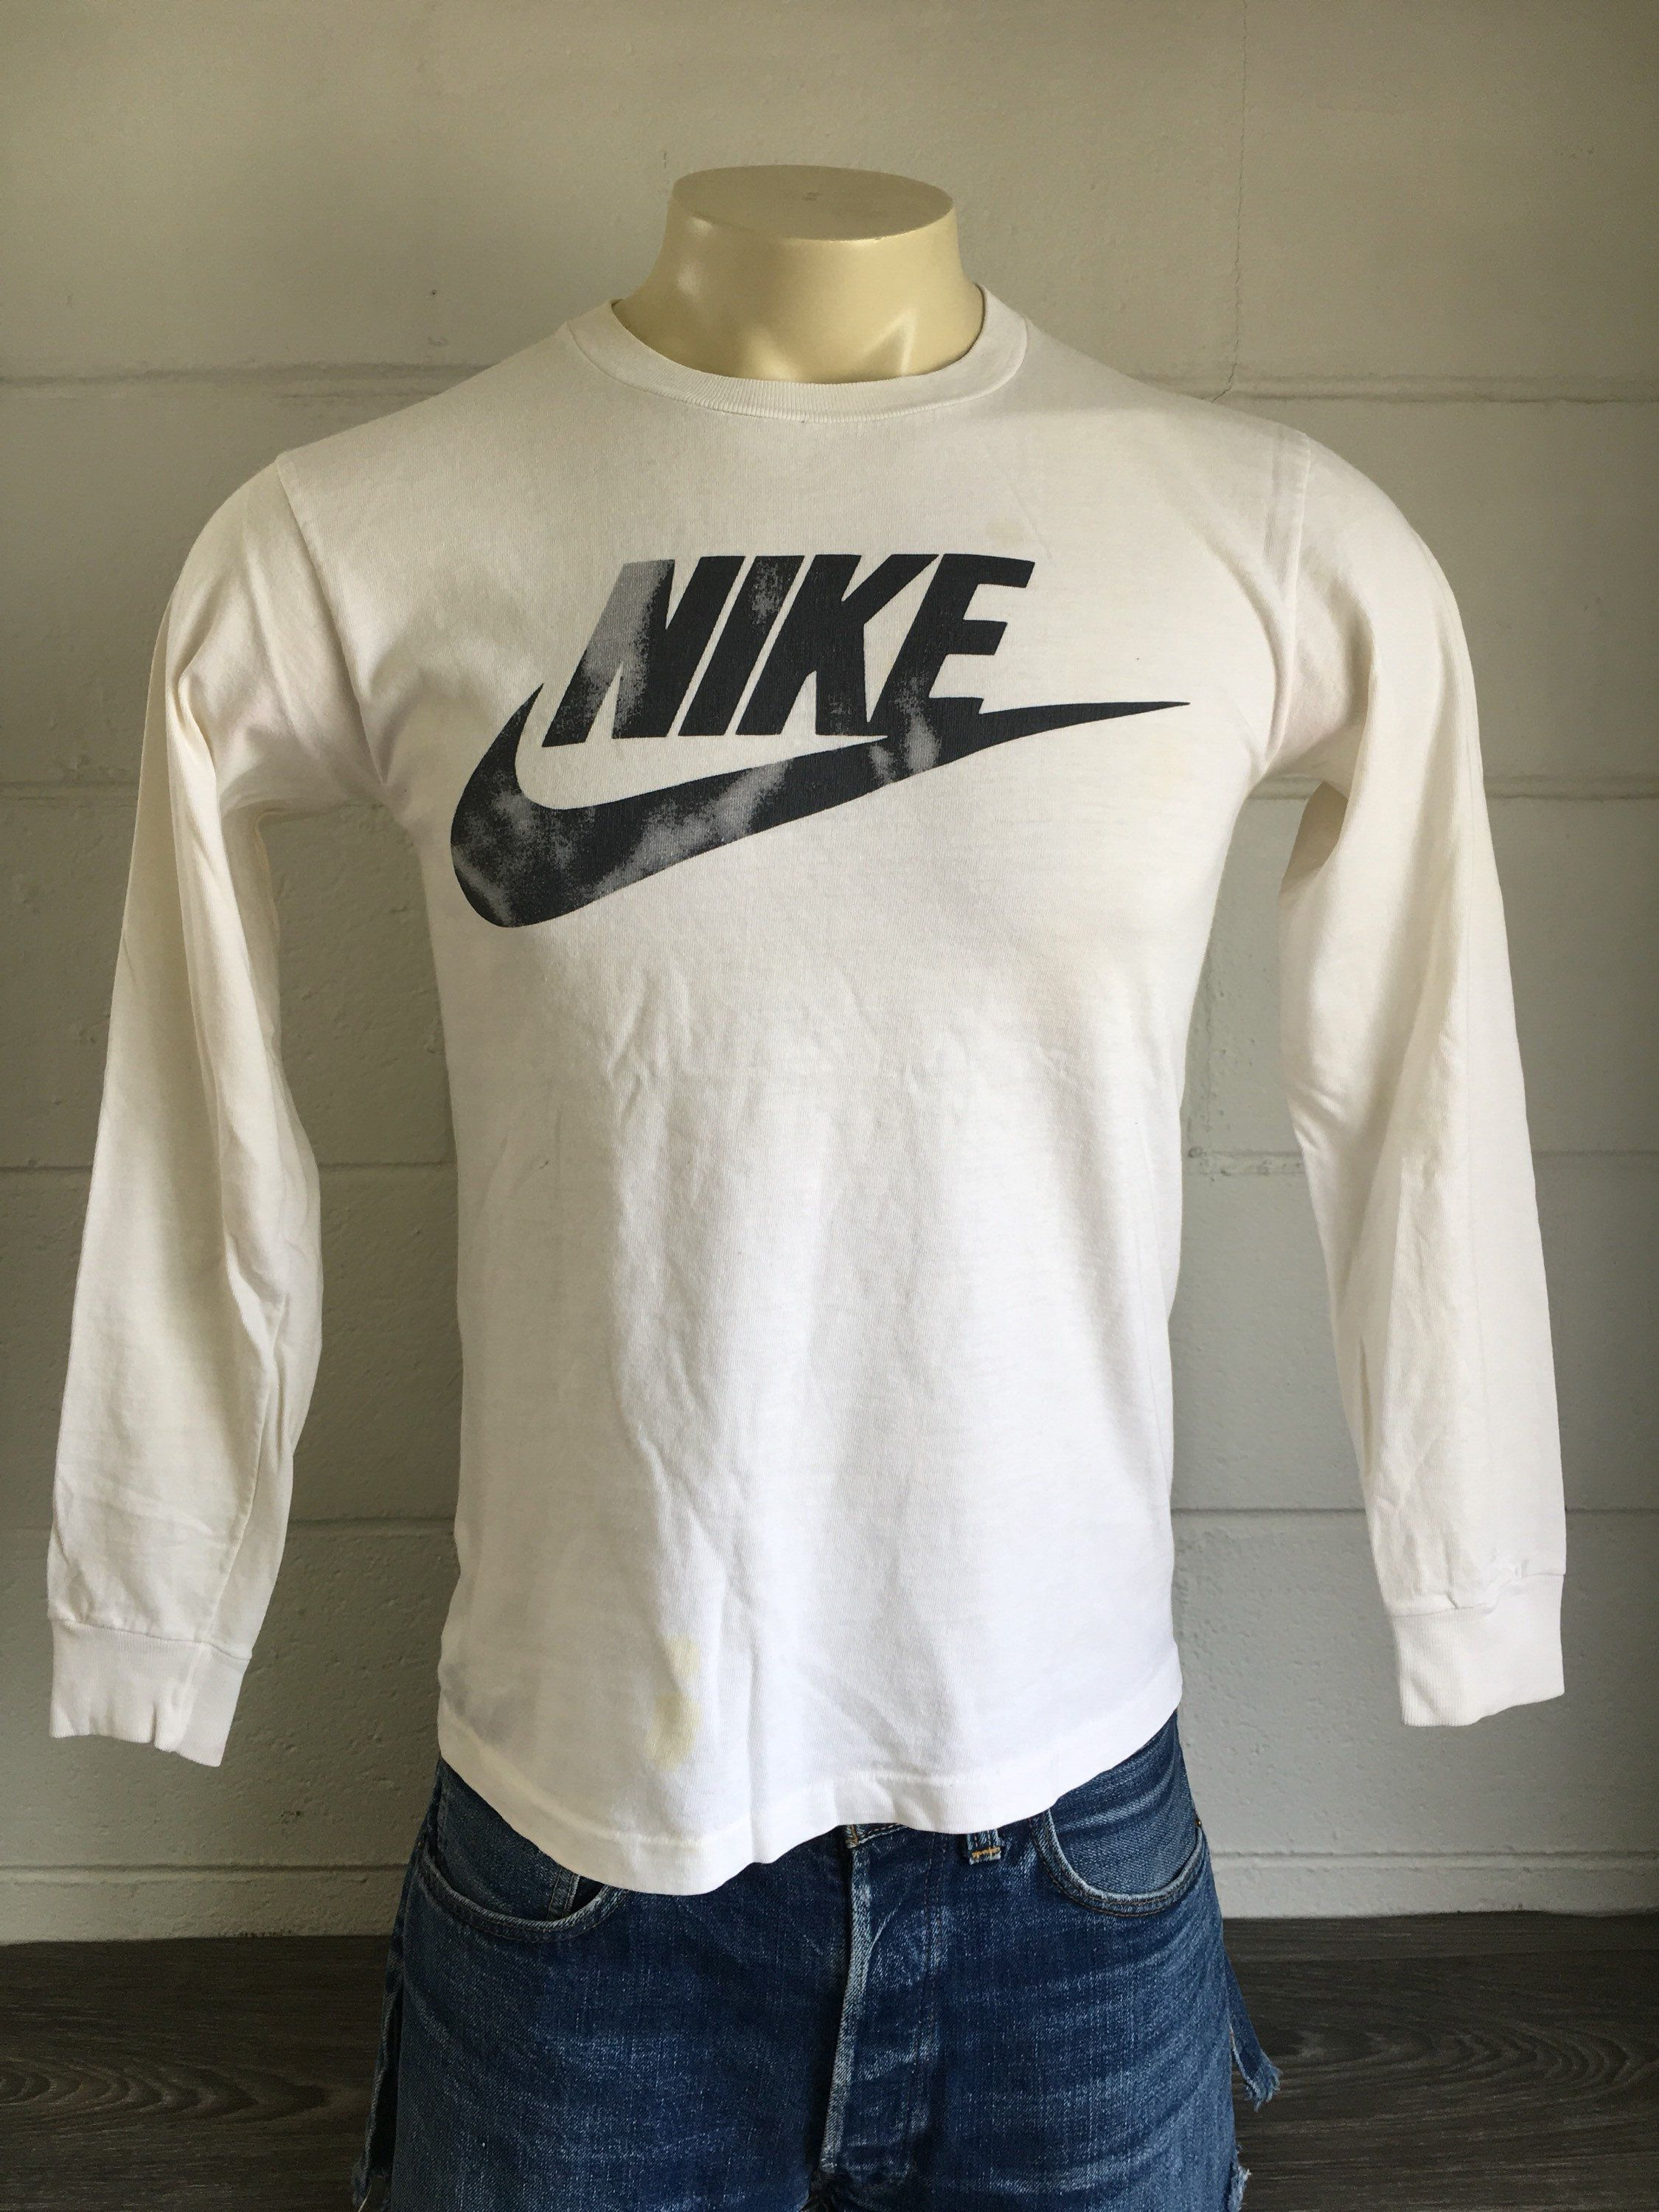 2b4dec73a59f5 NIKE Shirt 80's Vintage Long Sleeve Tshirt Blue Tag Black & White ...